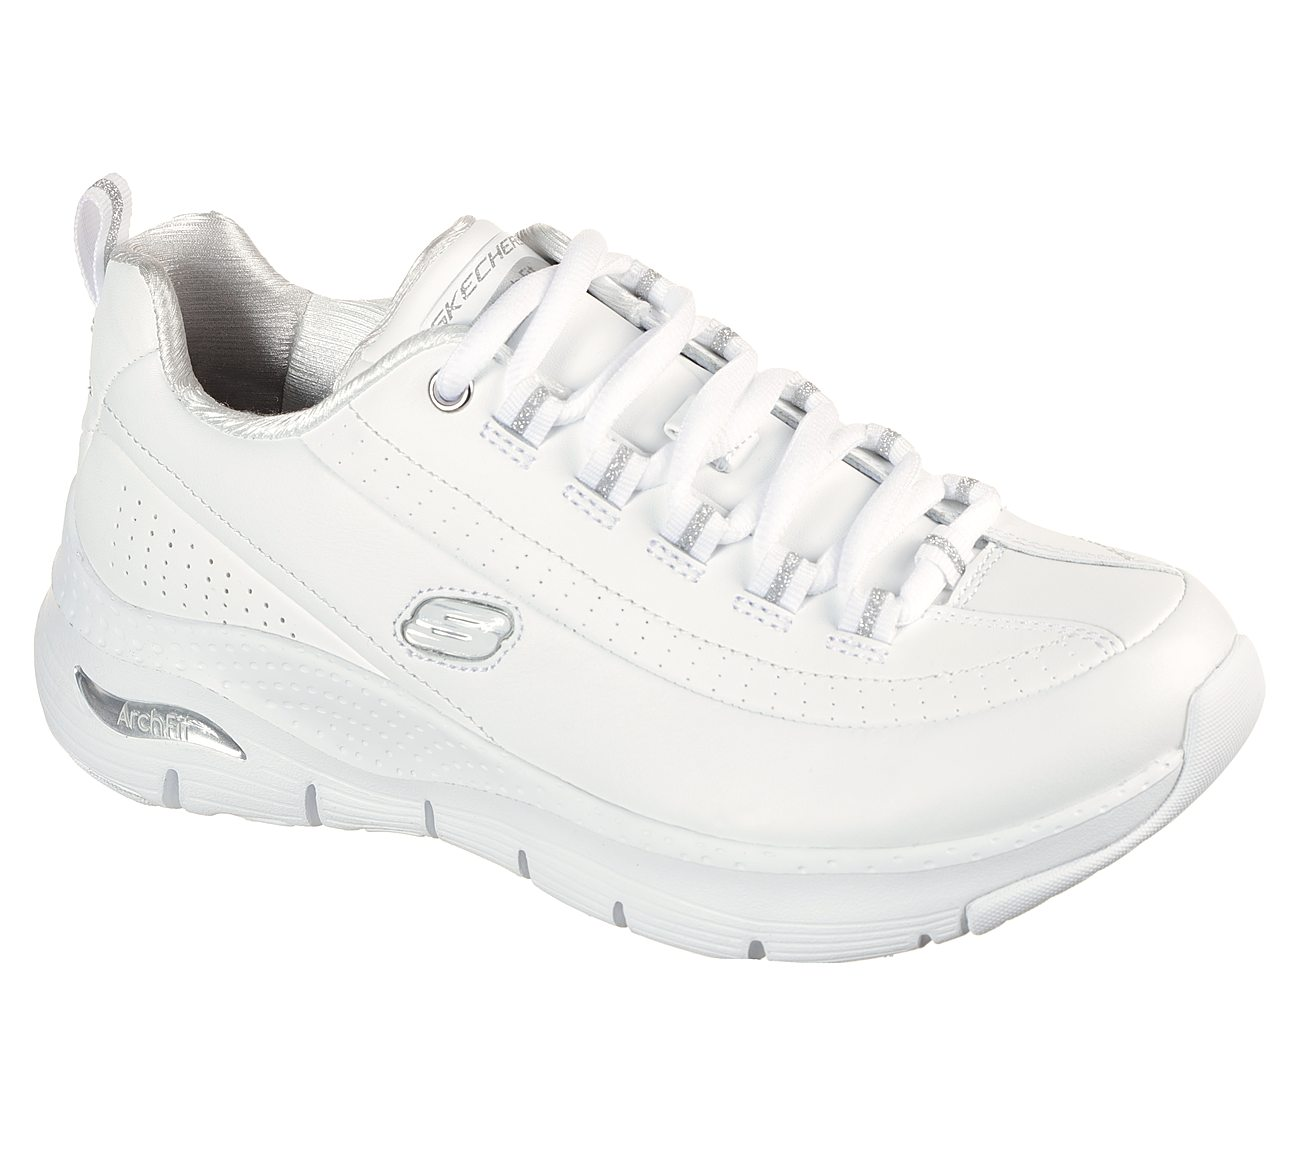 DEPORTIVO SKECHERS ARCH FIT BLANCO